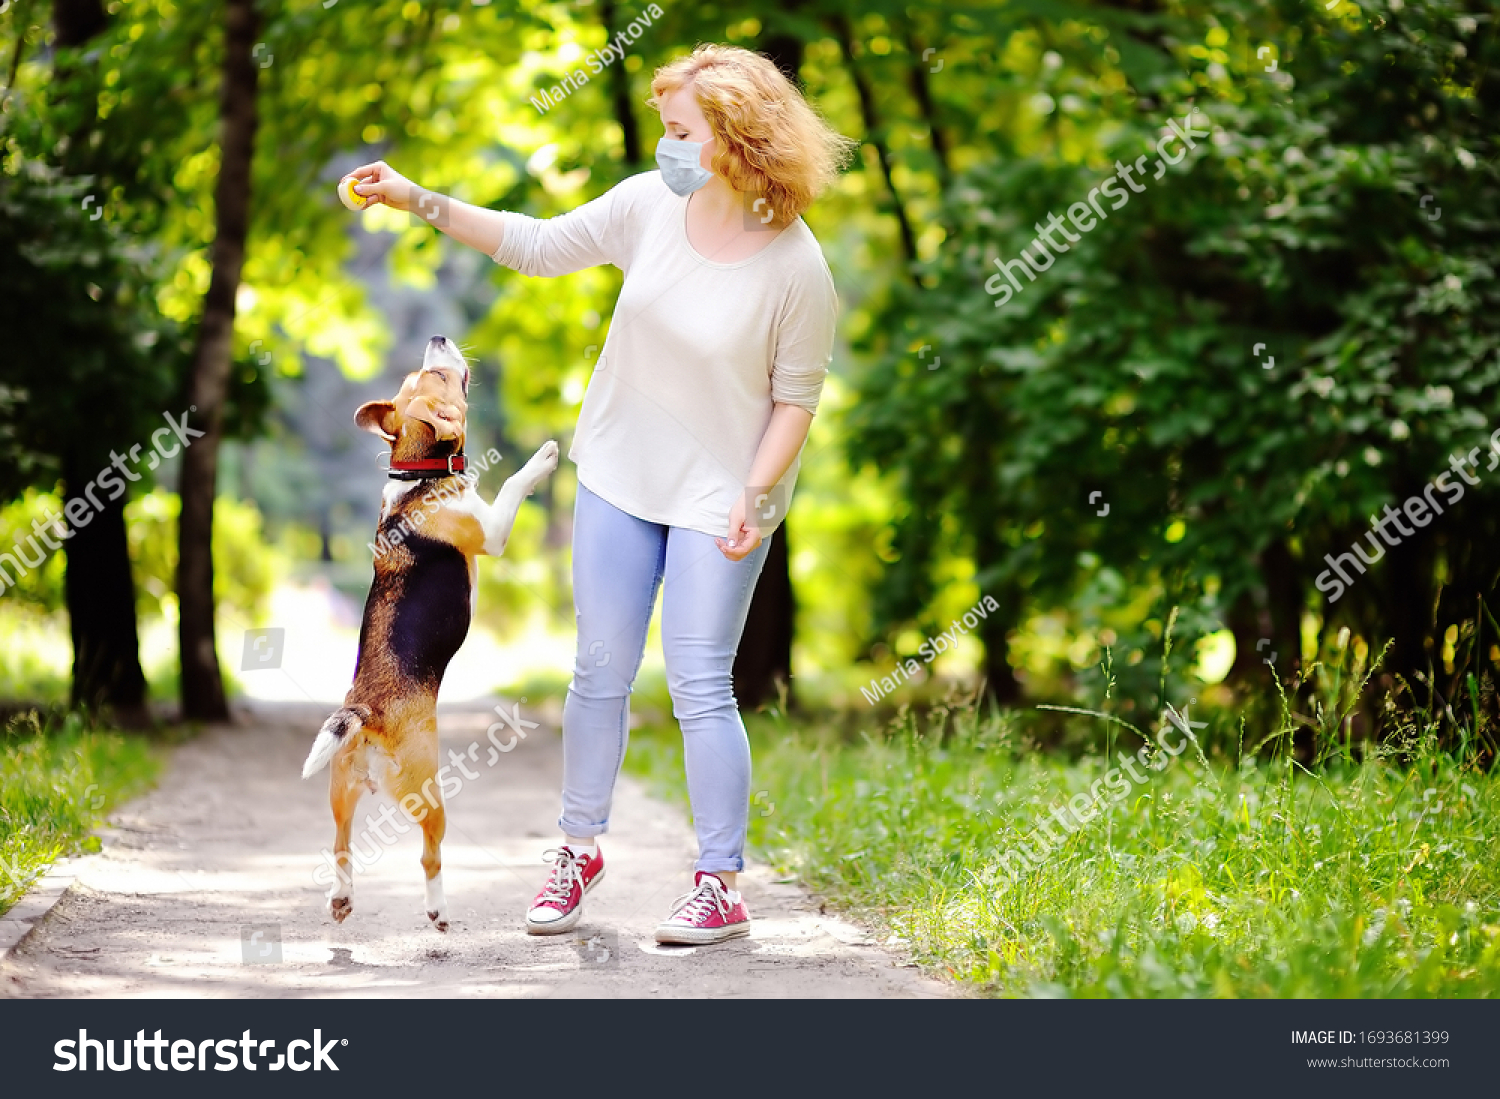 Young beautiful woman wearing disposable medical face mask playing with Beagle dog in the park during coronavirus outbreak. Walking of pets. Safety in a public place while epidemic of covid-19.